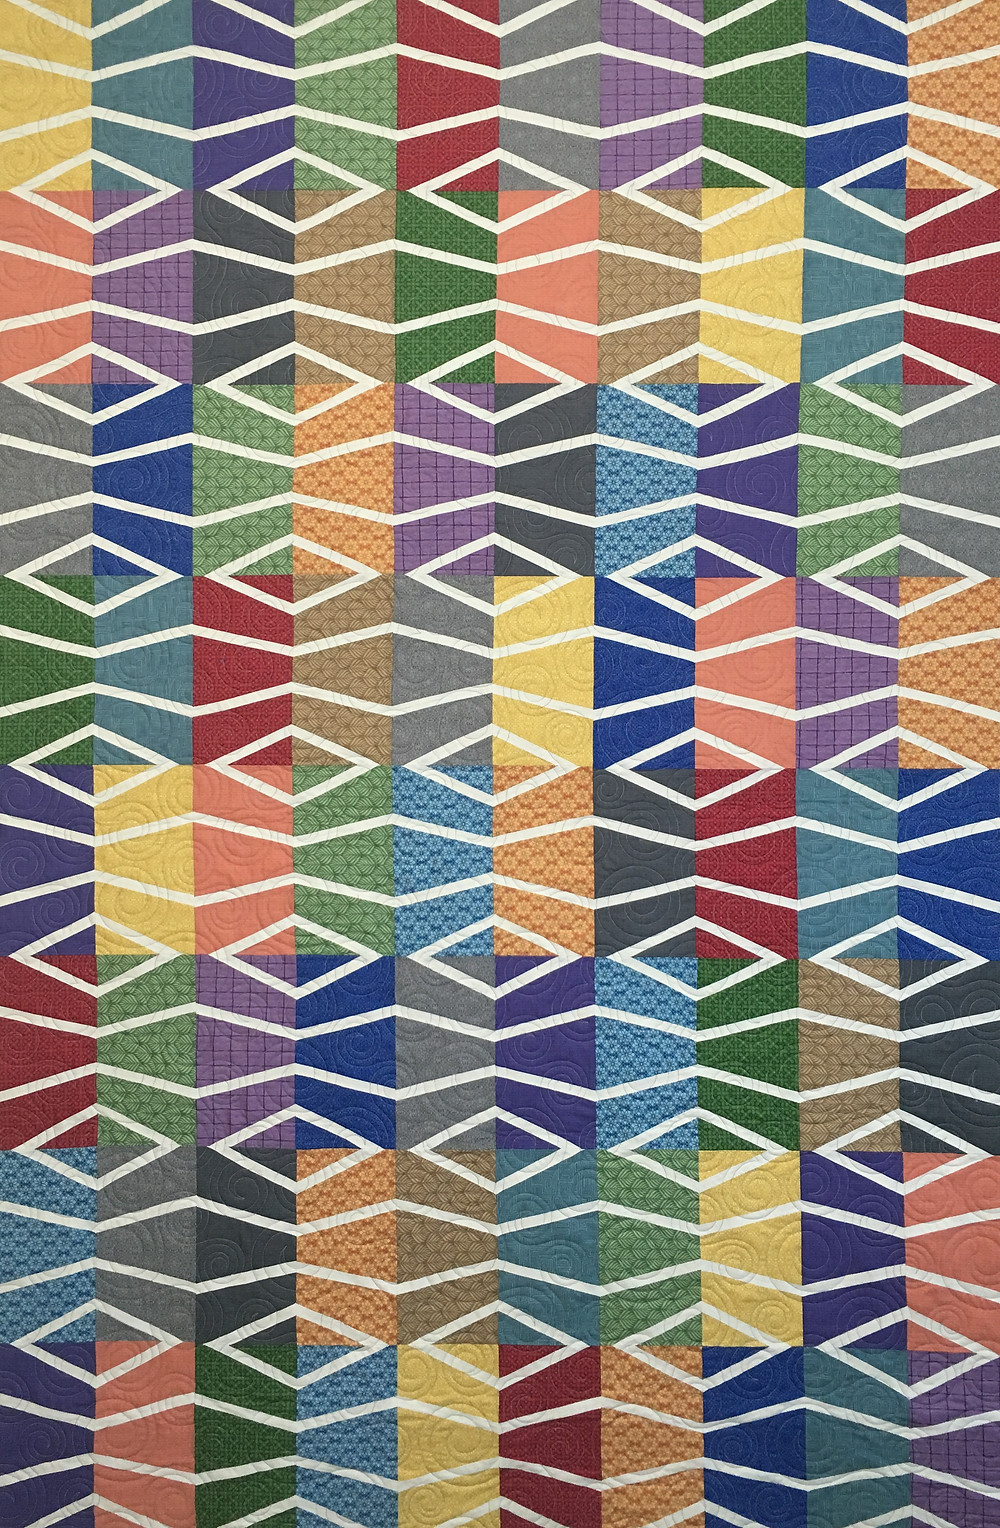 Diagonal Bliss Quilt by Kathy Ryan